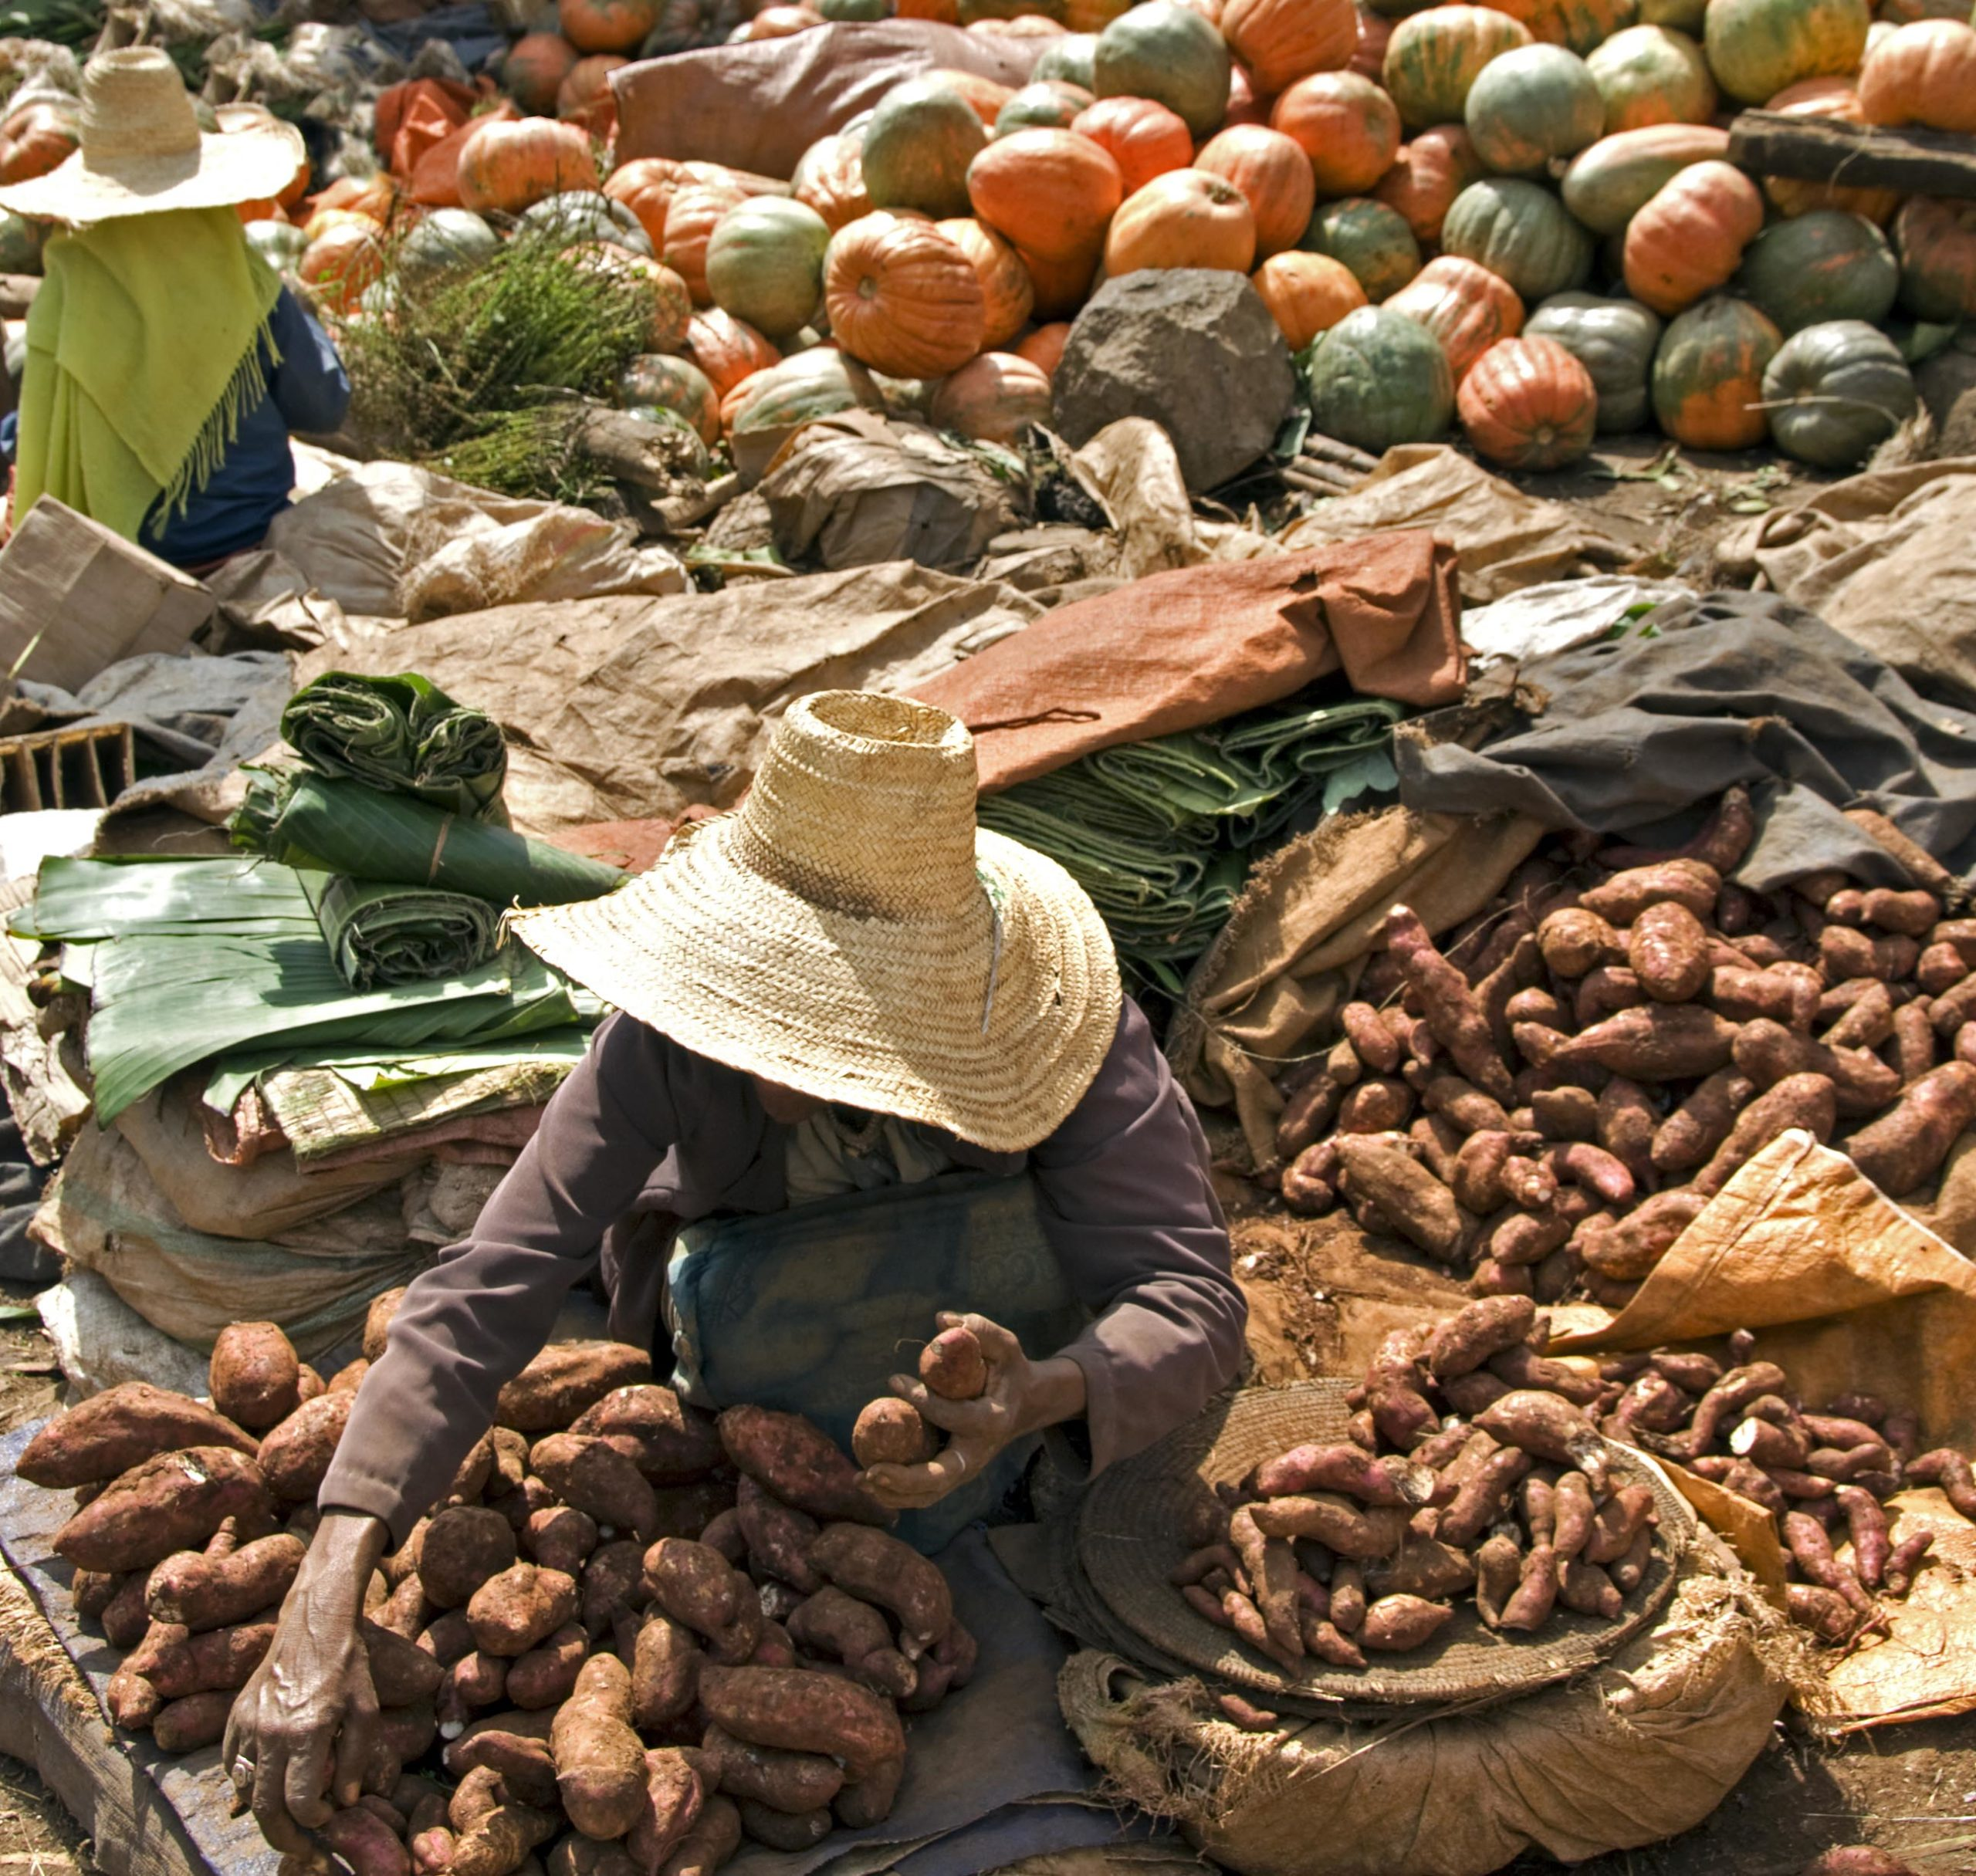 Food security, nutrition and planetary health